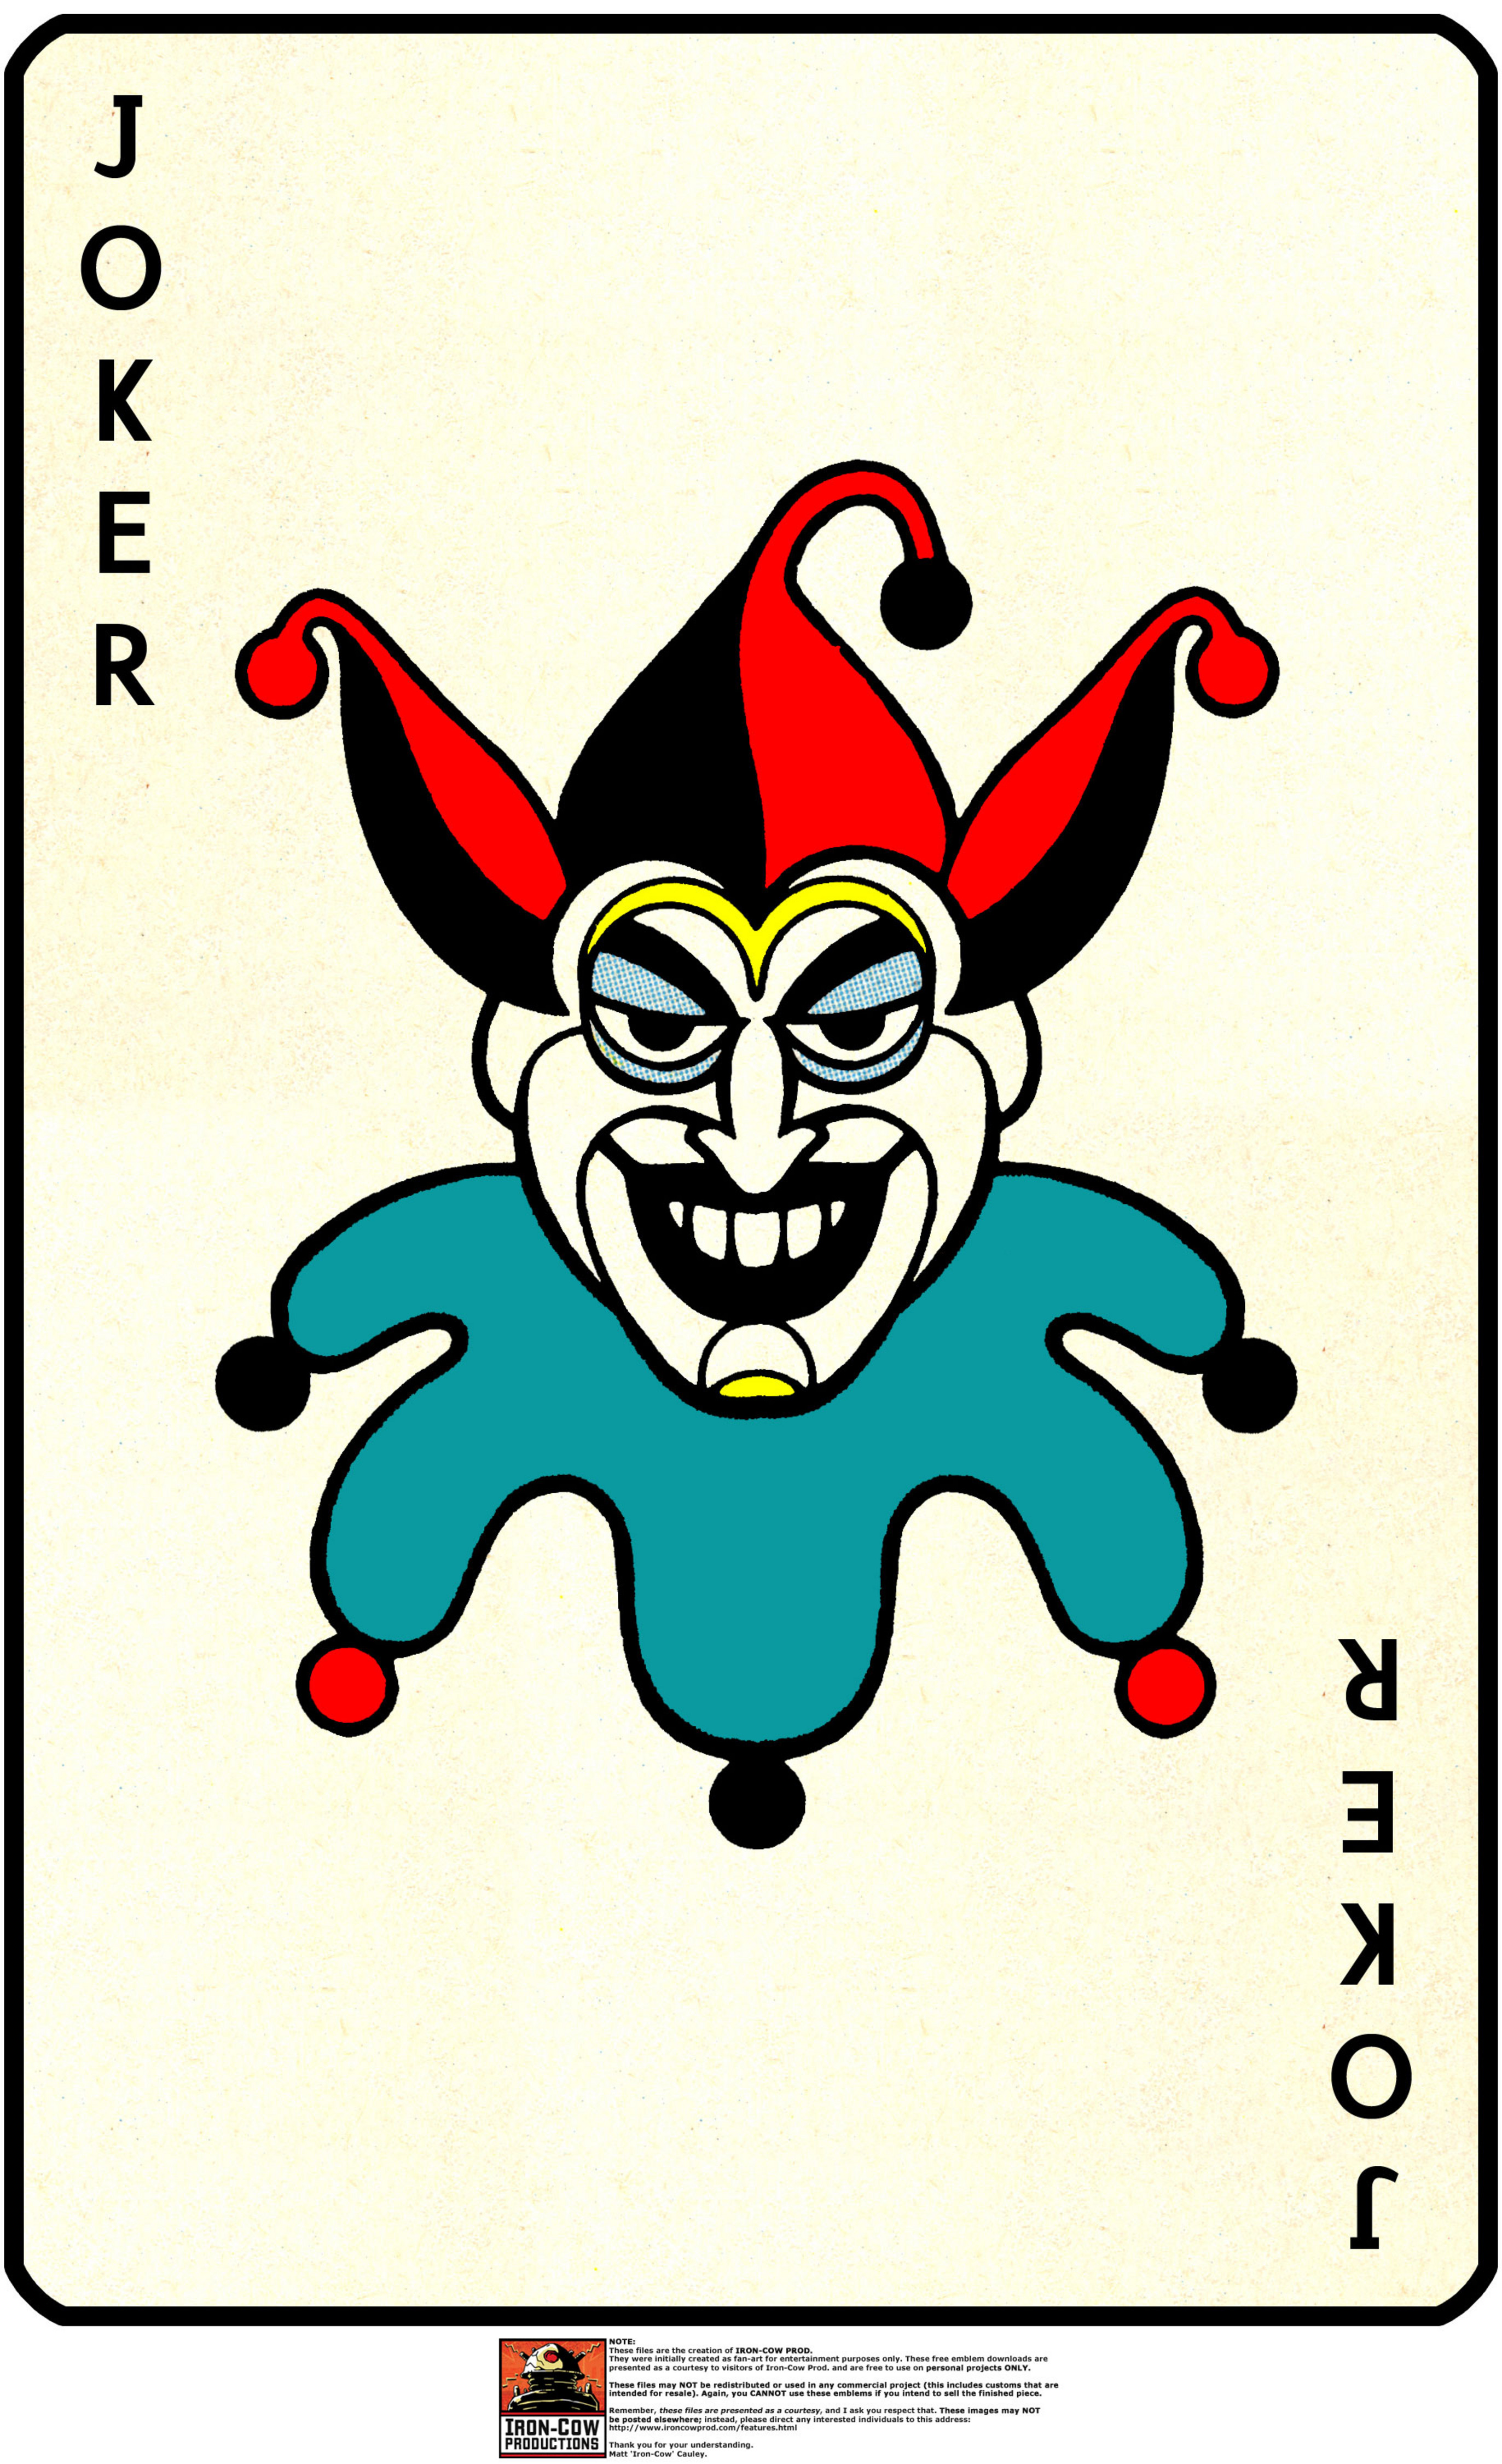 Joker Card Tattoo Flash